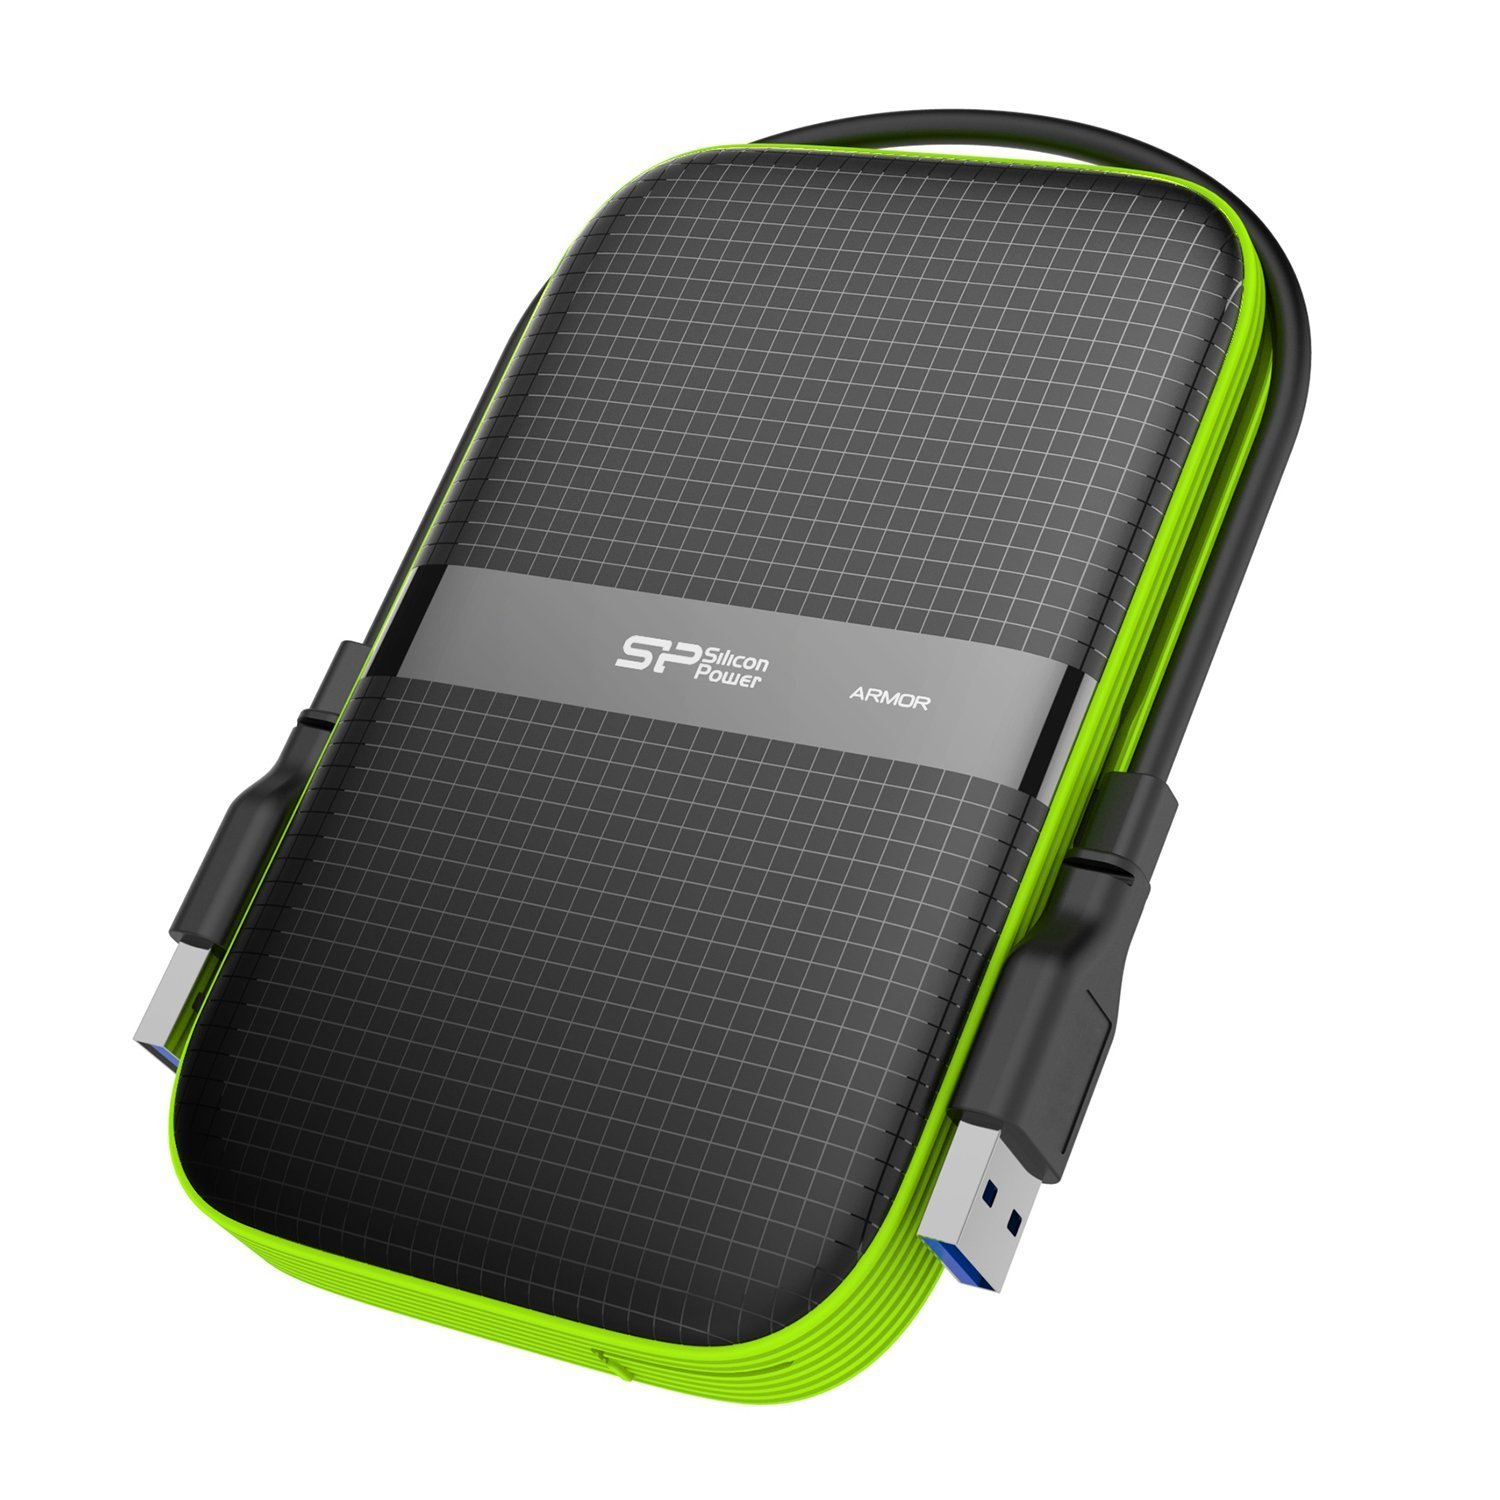 Silicon Power 2TB Rugged Portable External USB 3.0 Hard Drive Armor A60